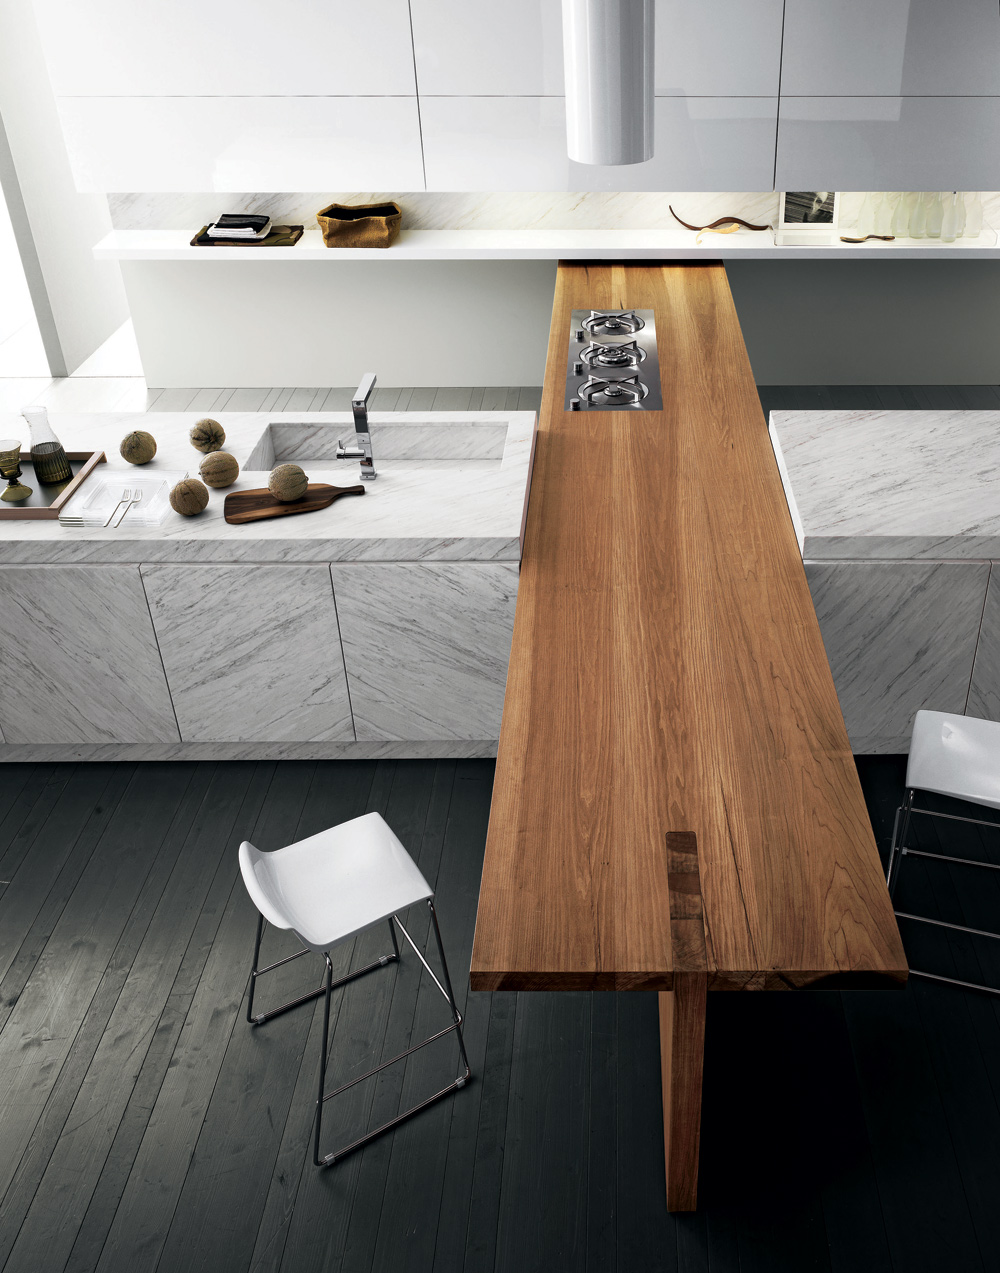 cesar kitchen cabinetry press release - mck+b